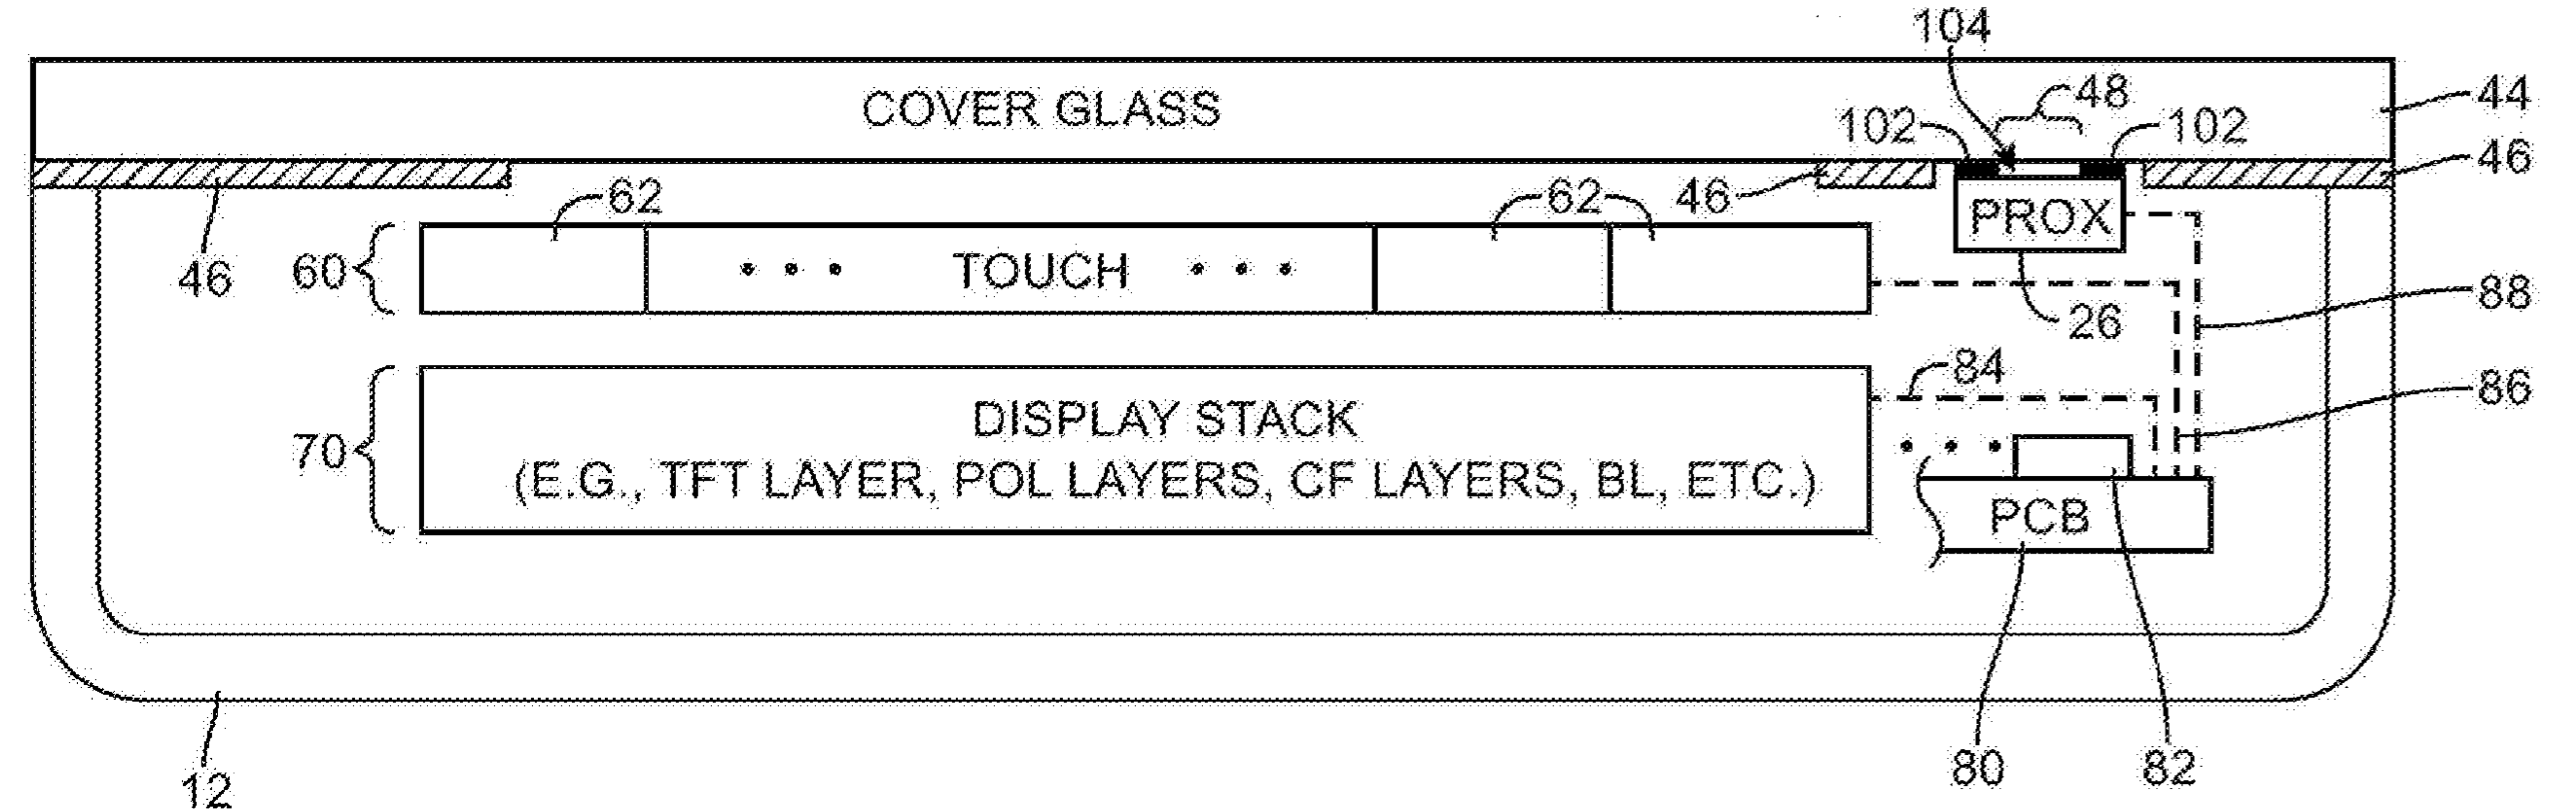 Apple patent smudge detection proximity sensor drawing 003